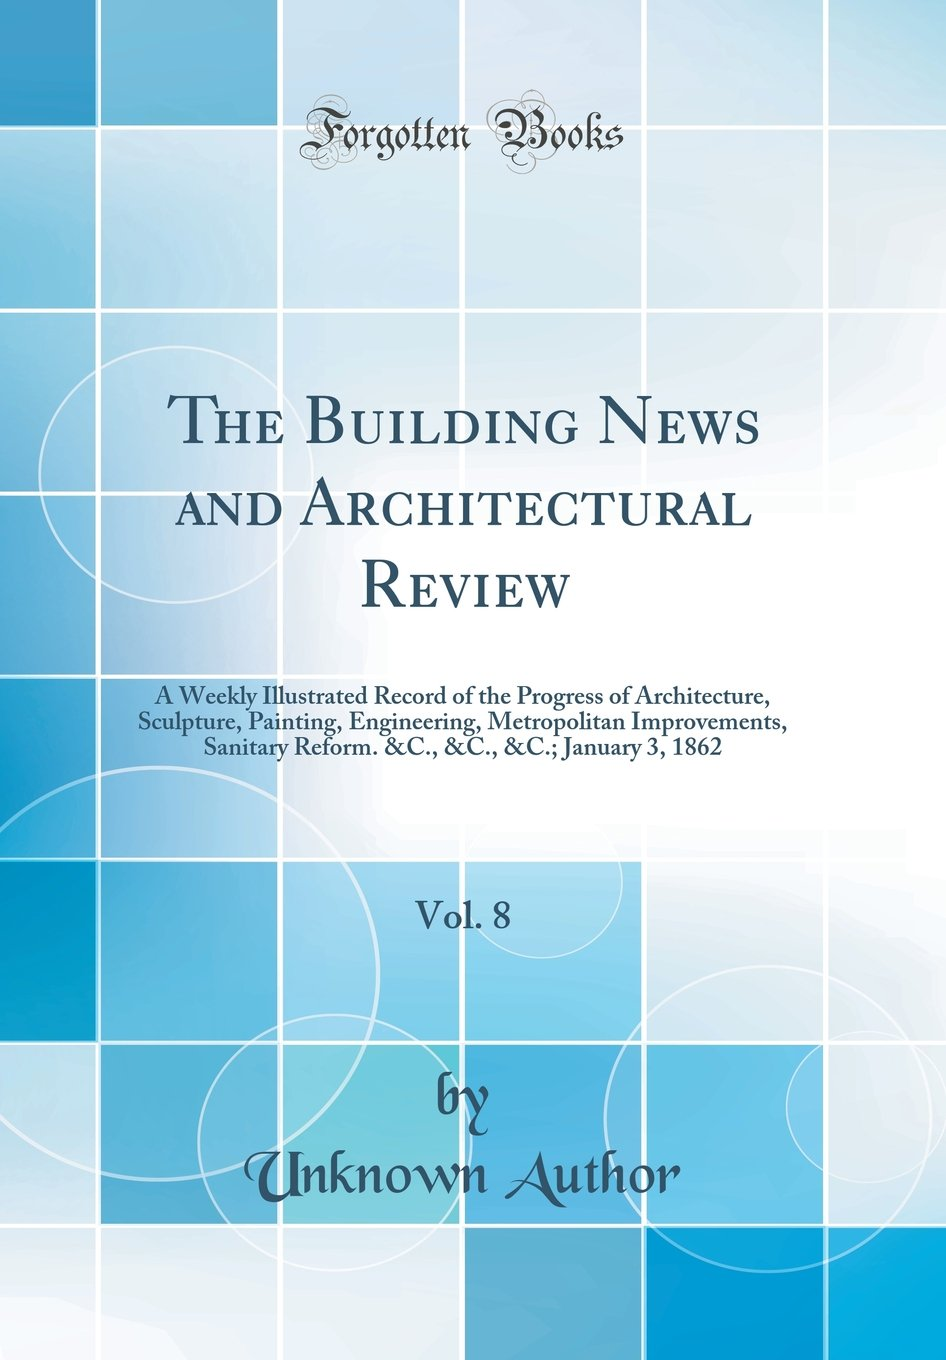 Download The Building News and Architectural Review, Vol. 8: A Weekly Illustrated Record of the Progress of Architecture, Sculpture, Painting, Engineering, ... &C., &C.; January 3, 1862 (Classic Reprint) ebook